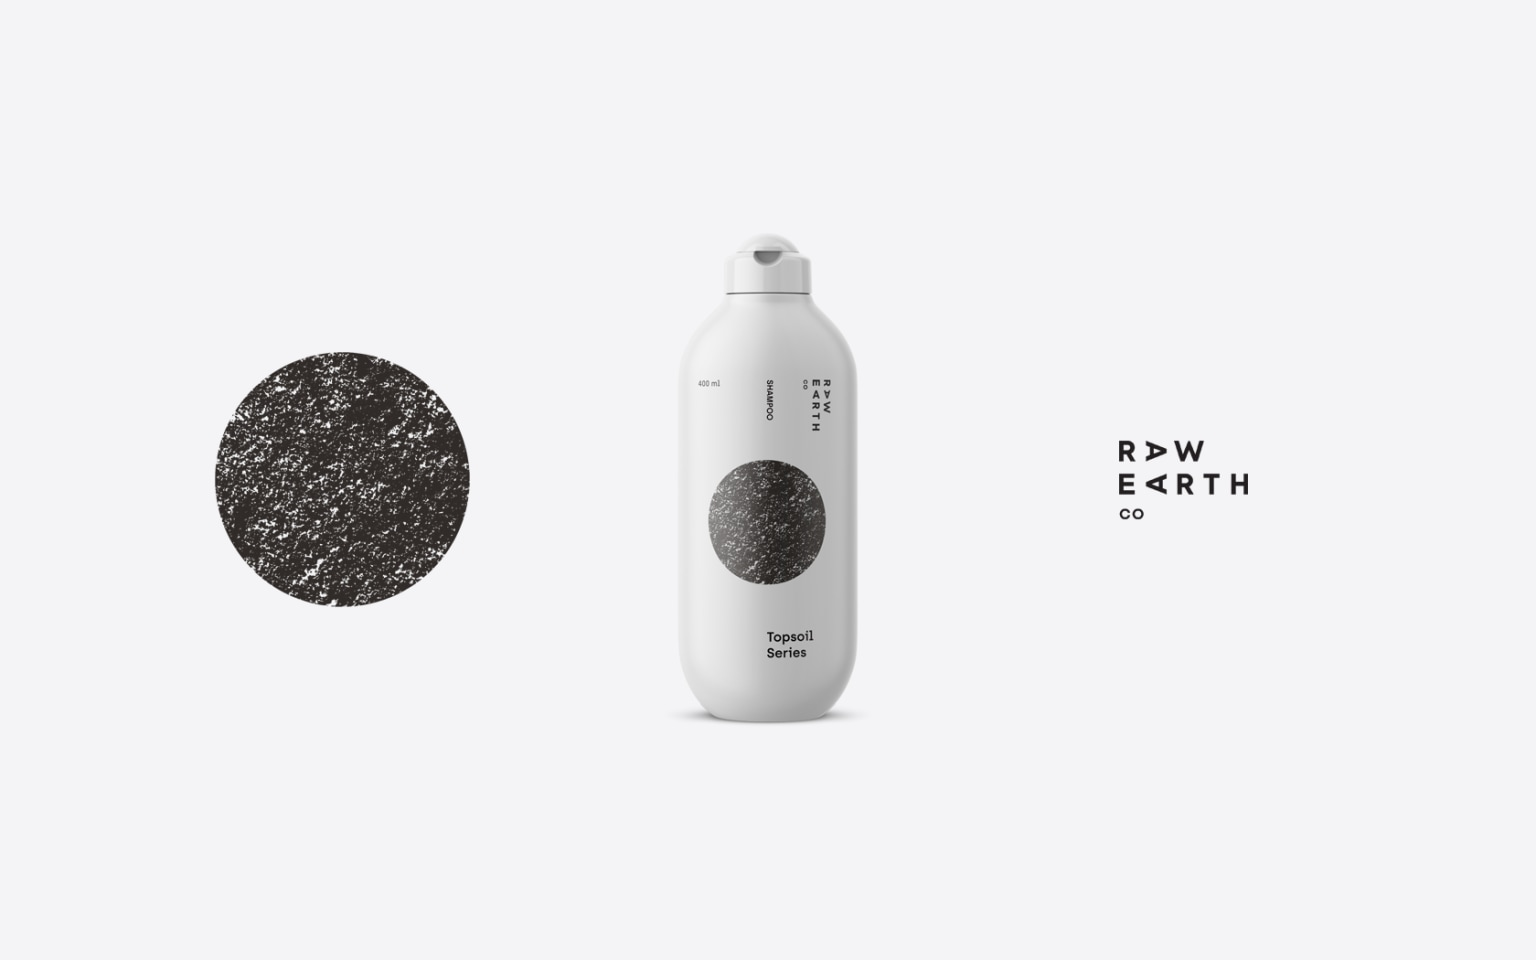 Raw Earth Co branding